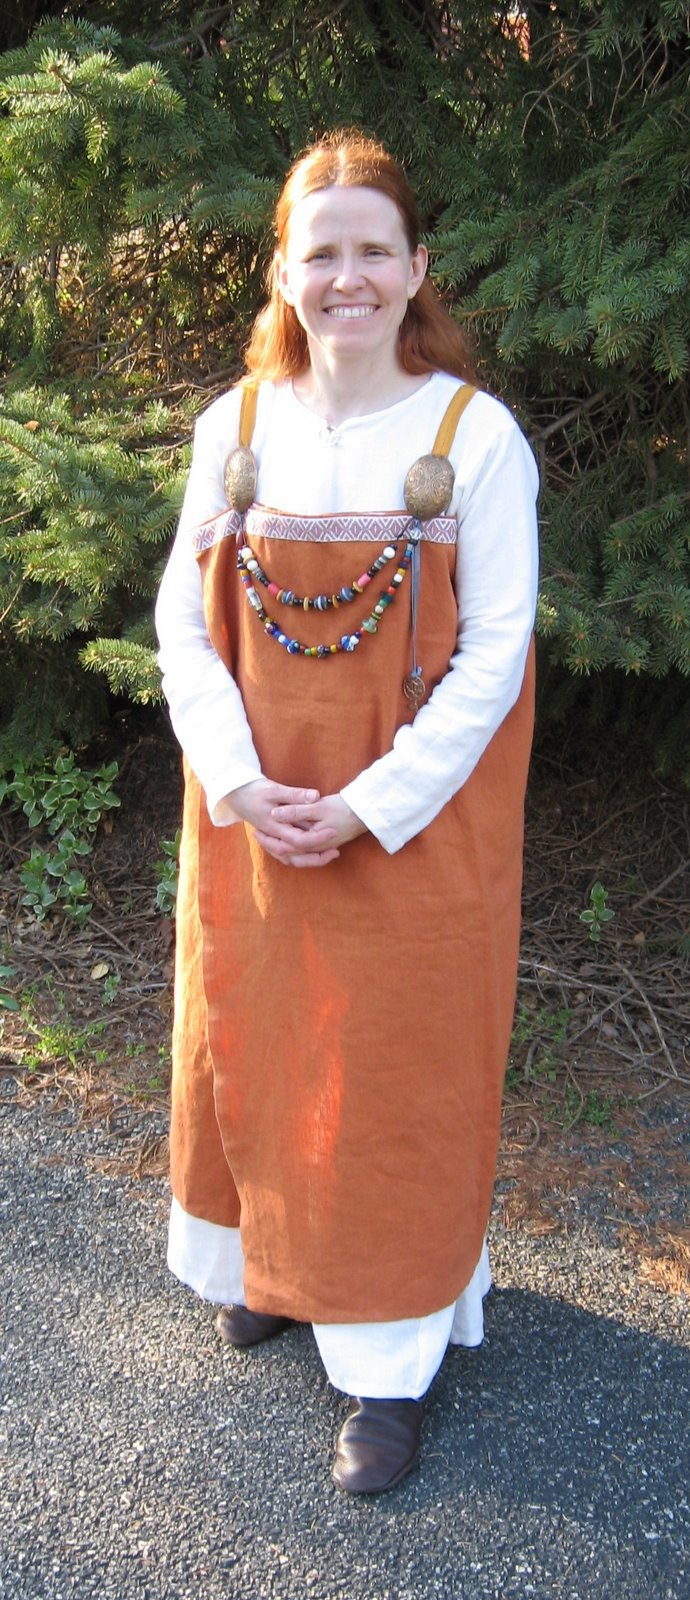 Terminology The So Called 'Viking' Apron Dress The Dreamstress